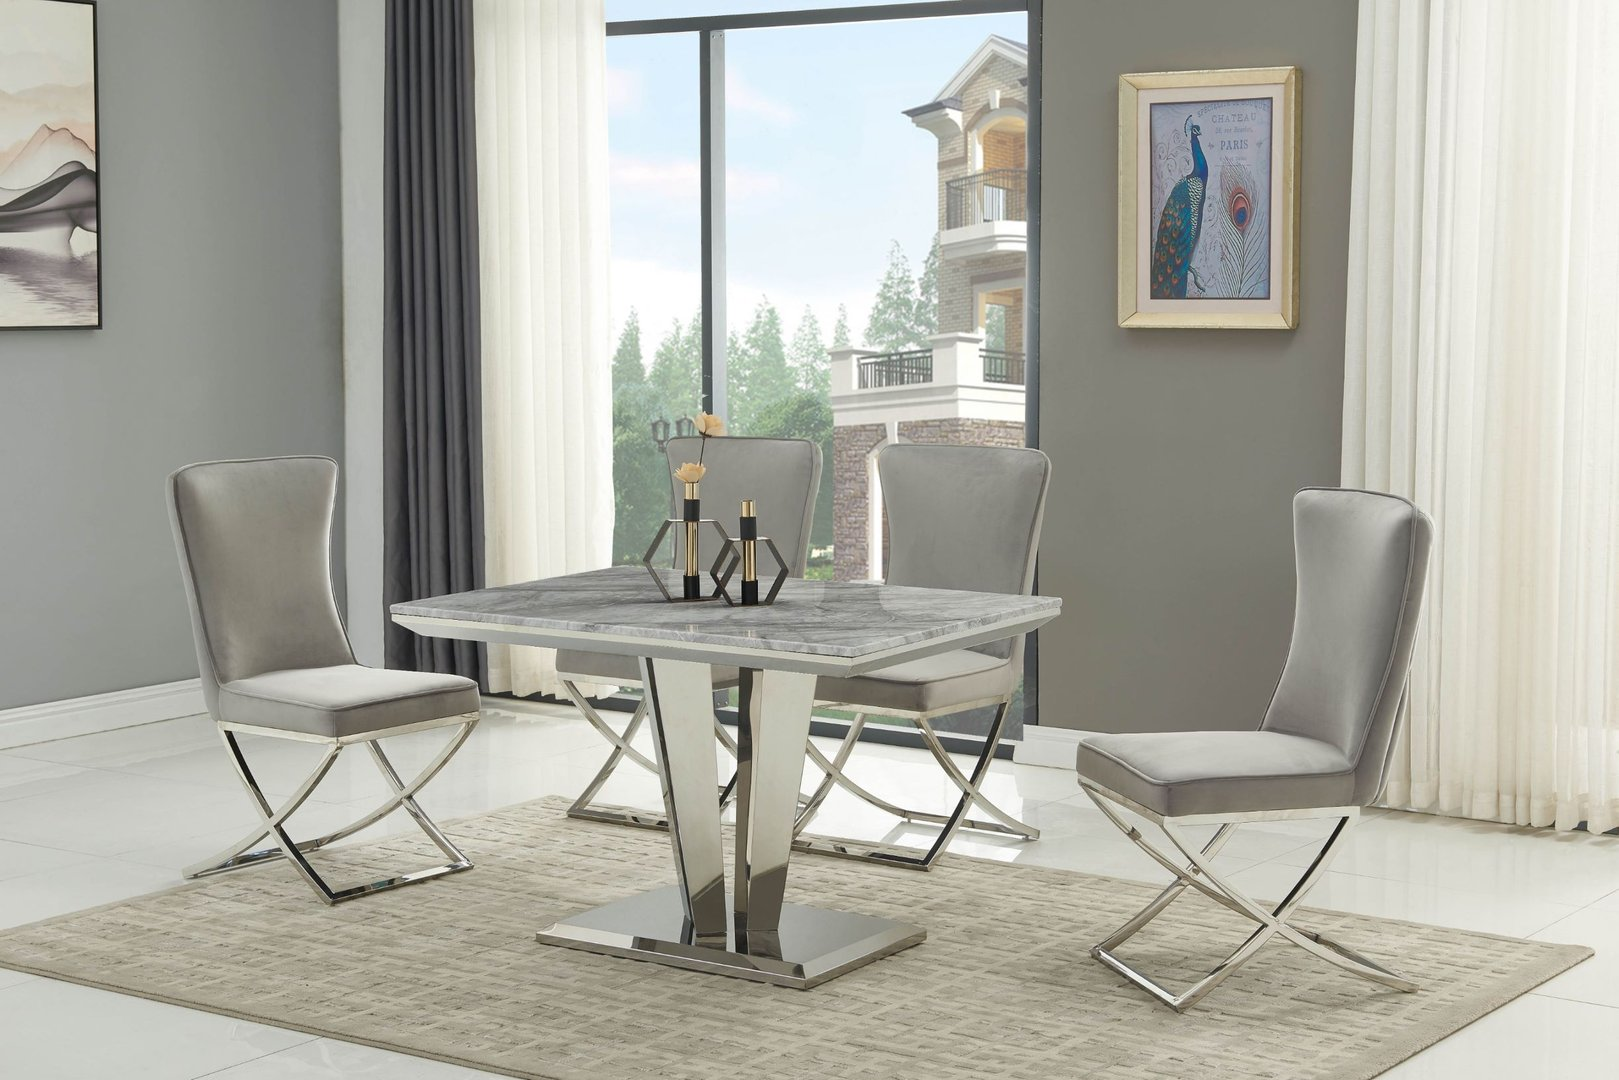 120cm Grey marble dining table with 4 grey chairs - Homegenies